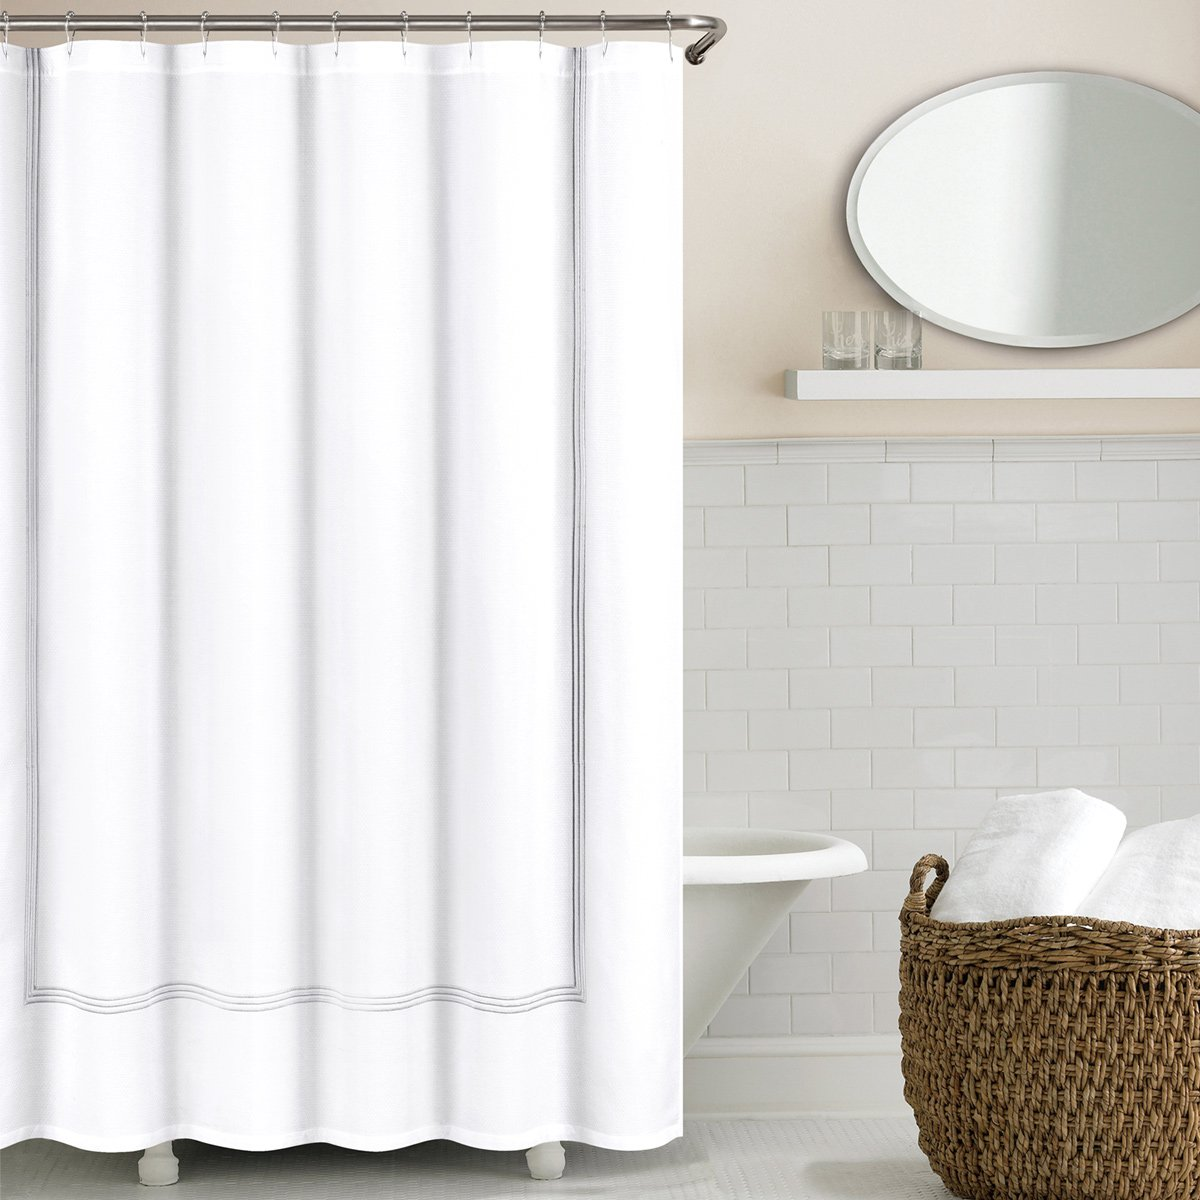 Echelon Home Echelon Hotel Collection Three Line Shower Curtain, Light Grey